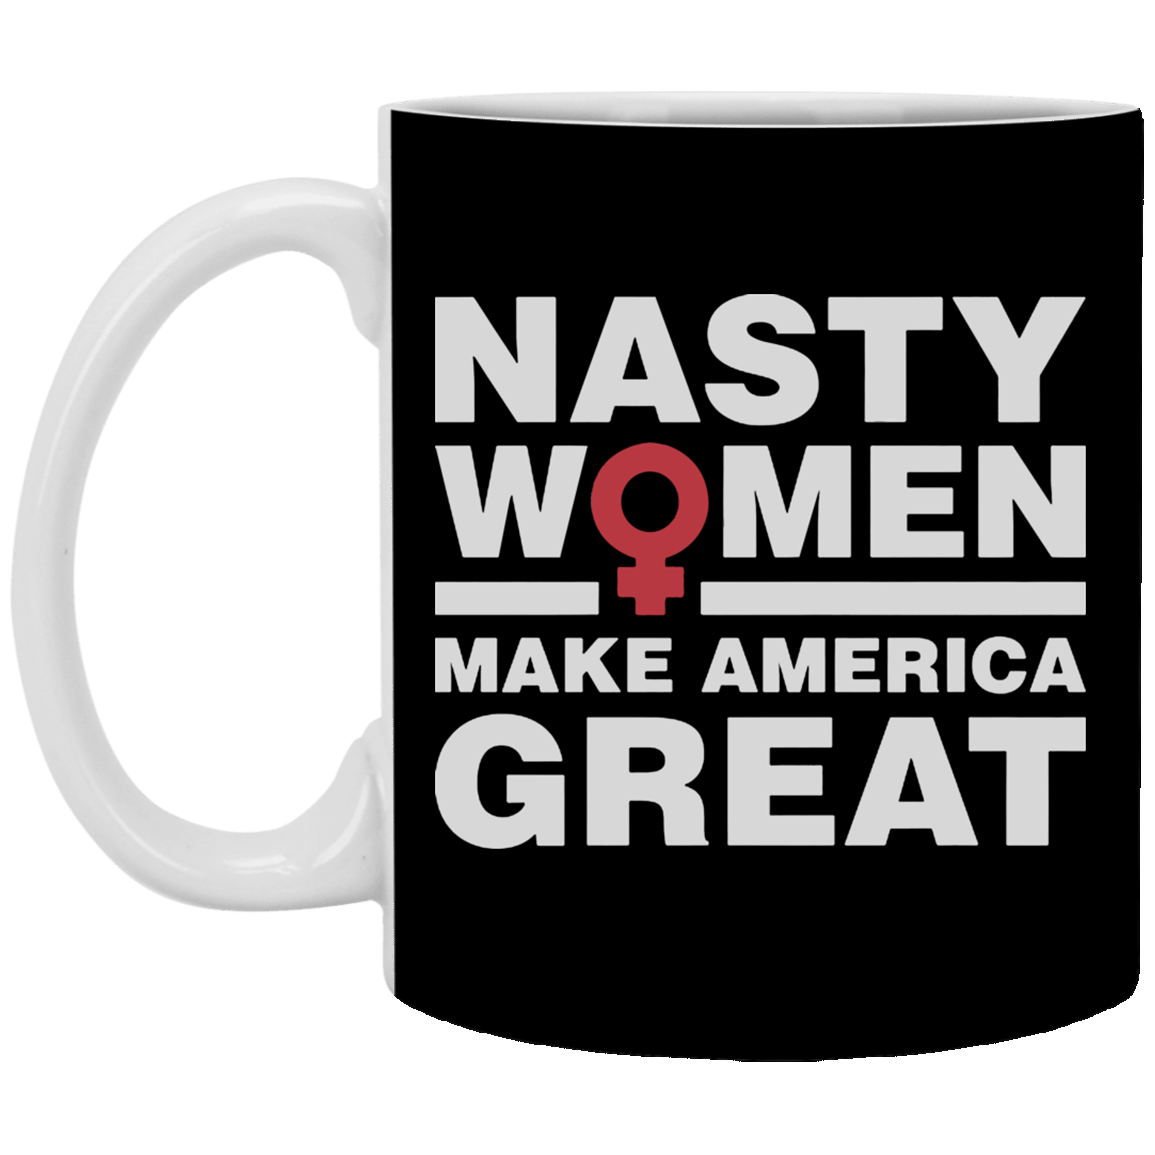 Kamala Nasty Women Make America Great Mug Kamala Harris Mug 2020 Presidential Campaign